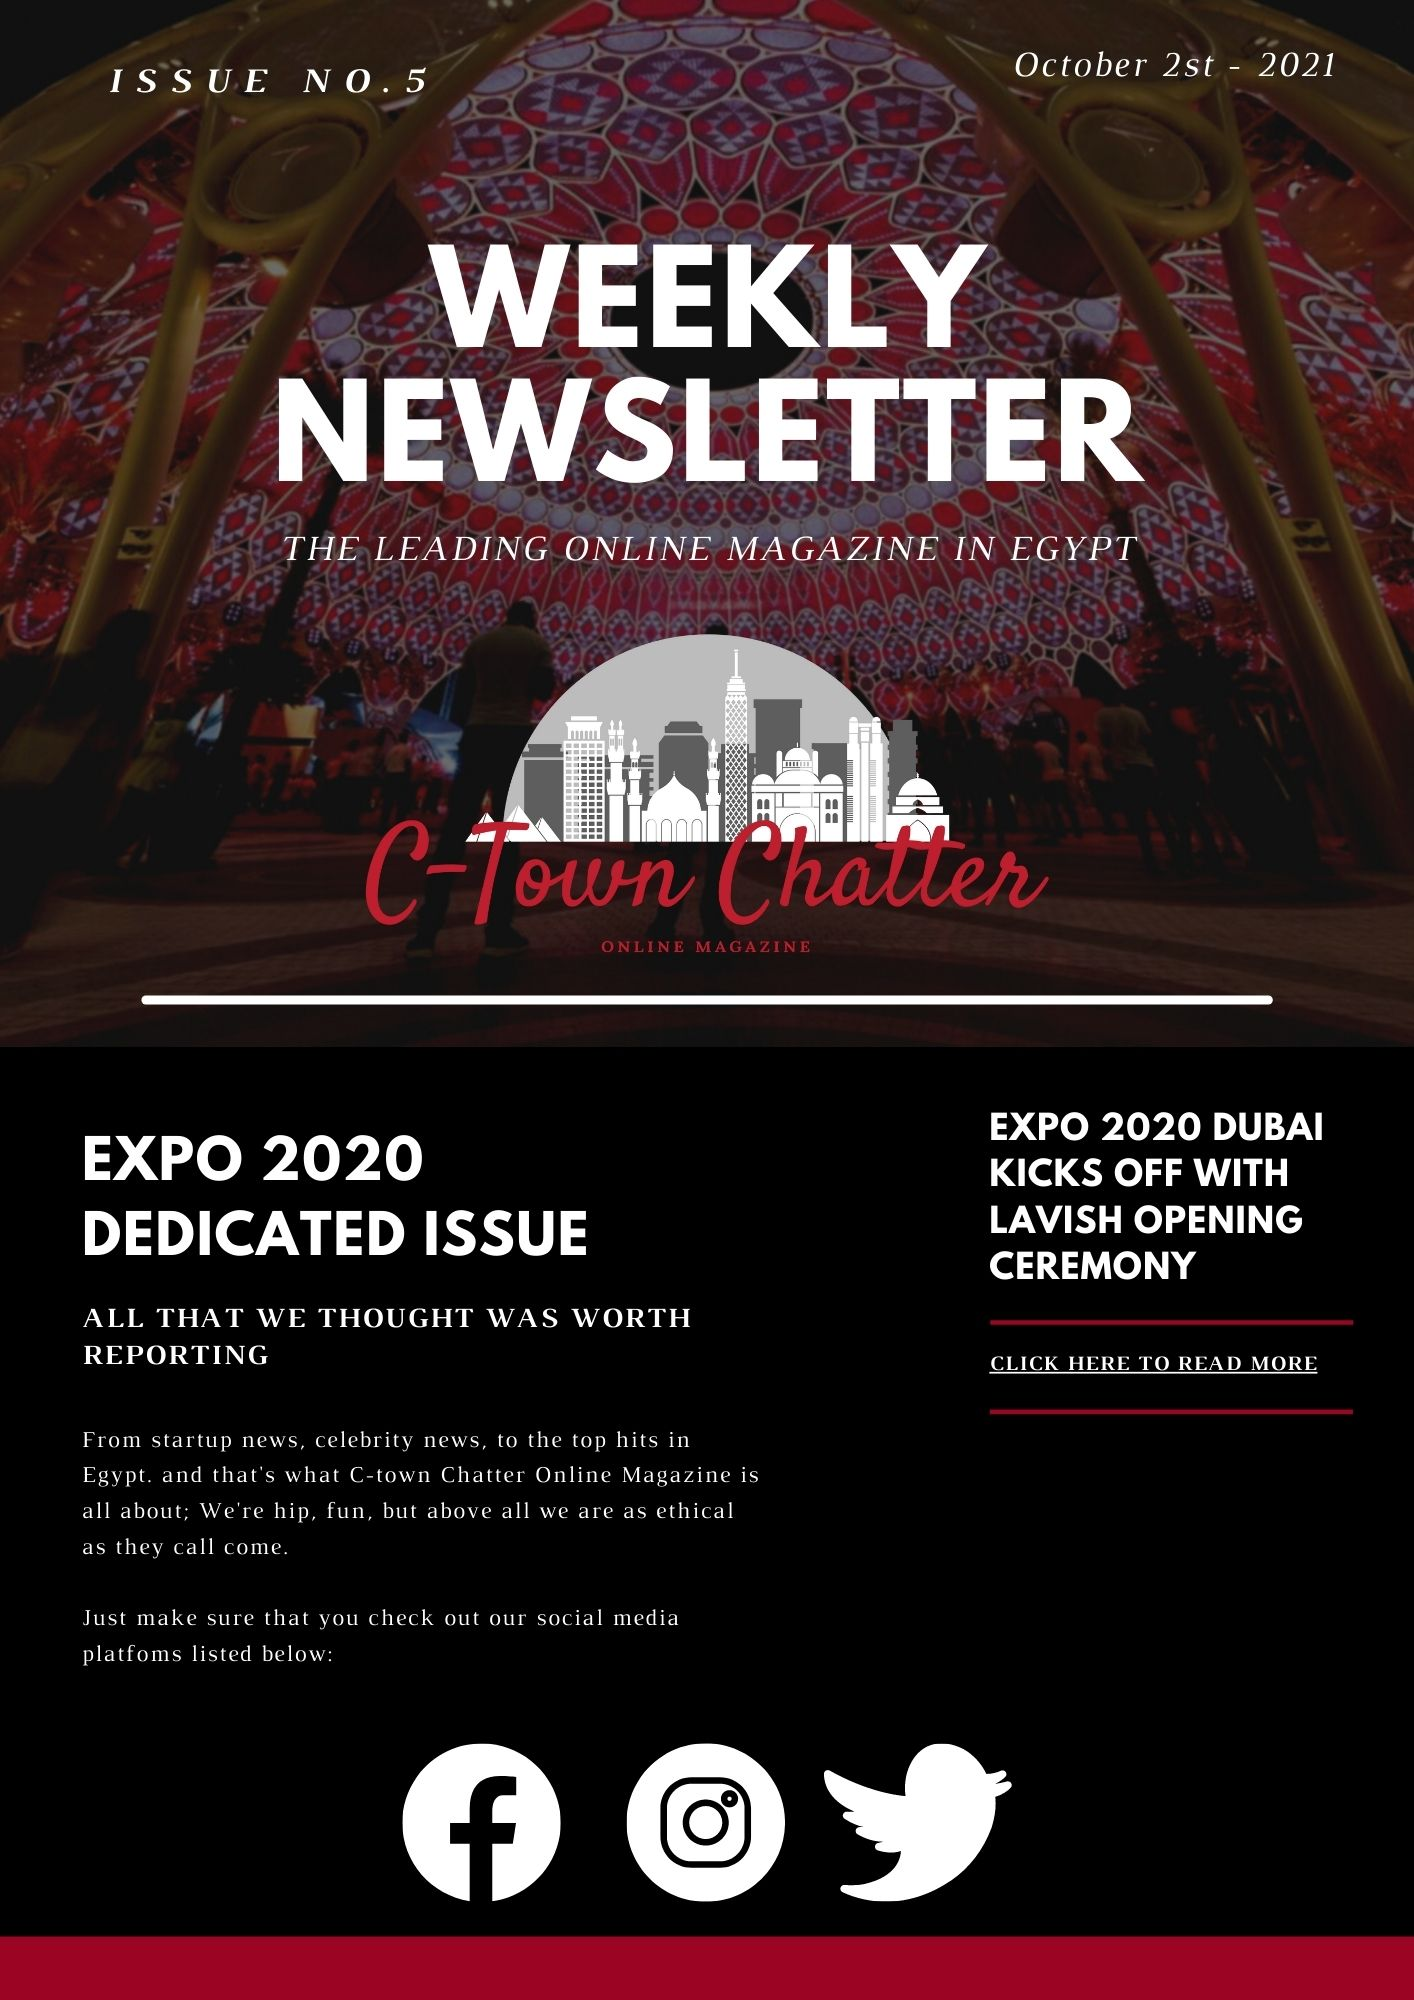 C-Town Chatter Newsletter - EXPO 2020